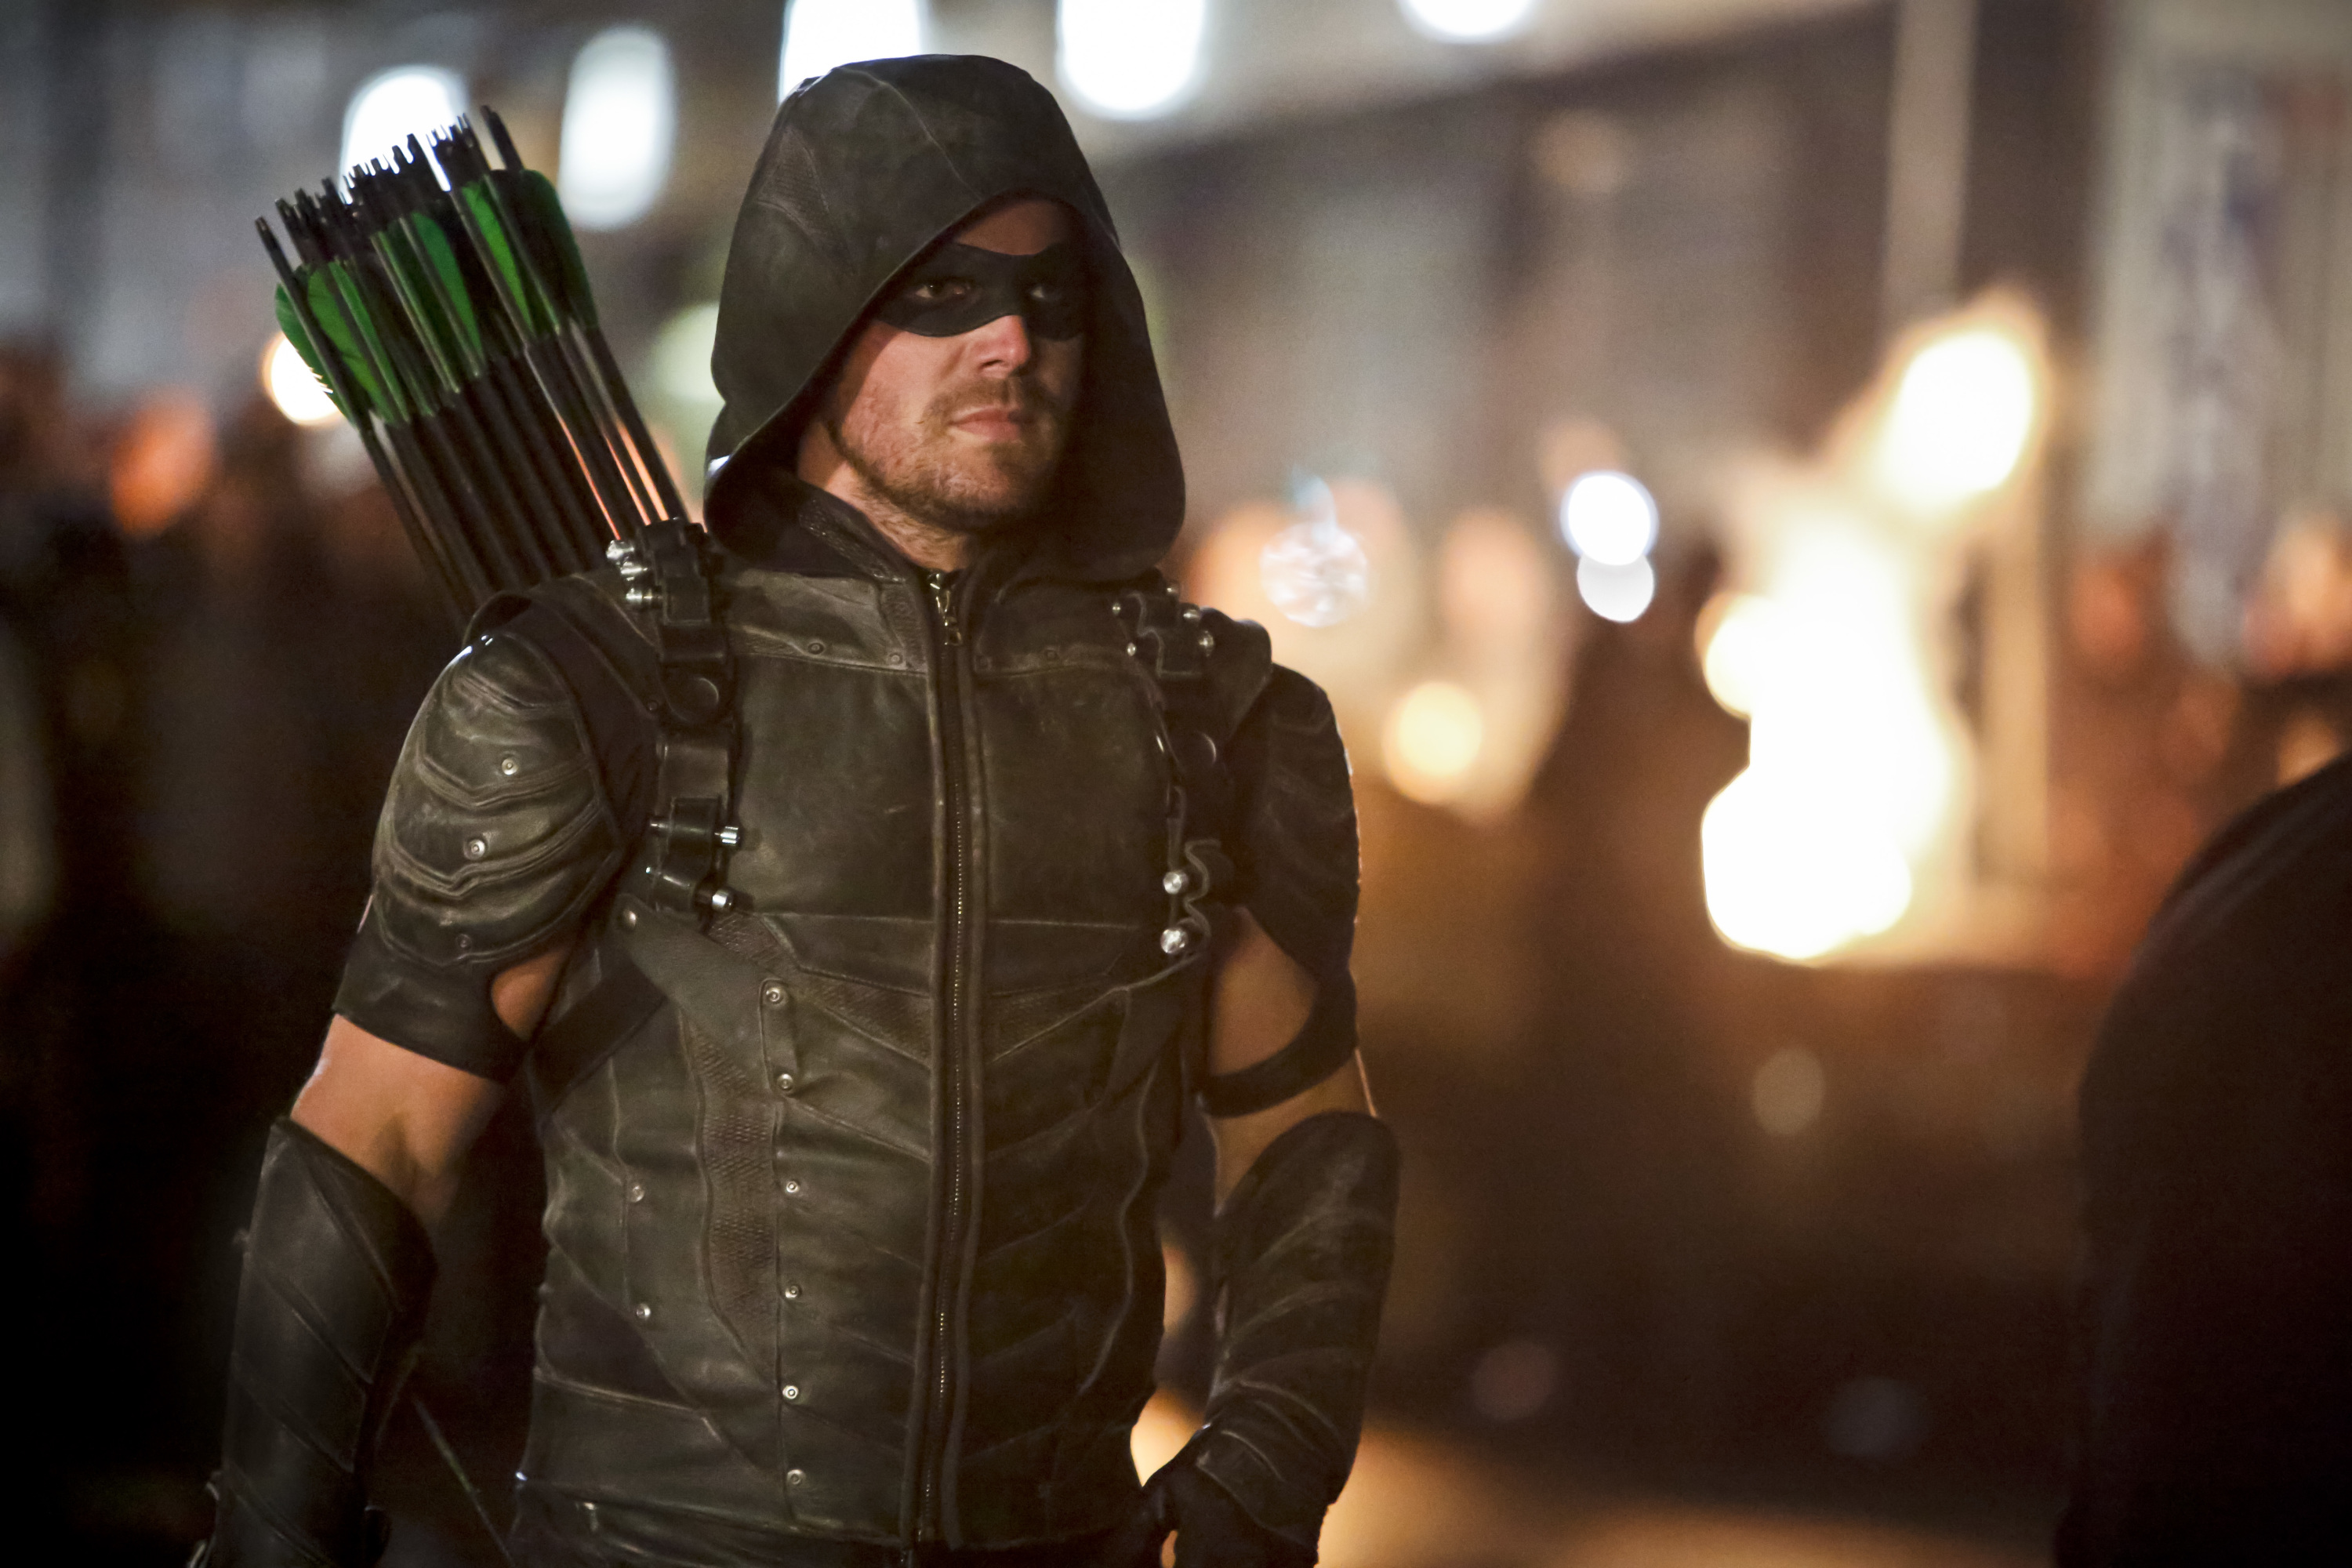 Arrow Season 5 Episode 4 Featured Oliver Queen and Lyla Working on a Secret Mission to Help Out Diggle, More Information!